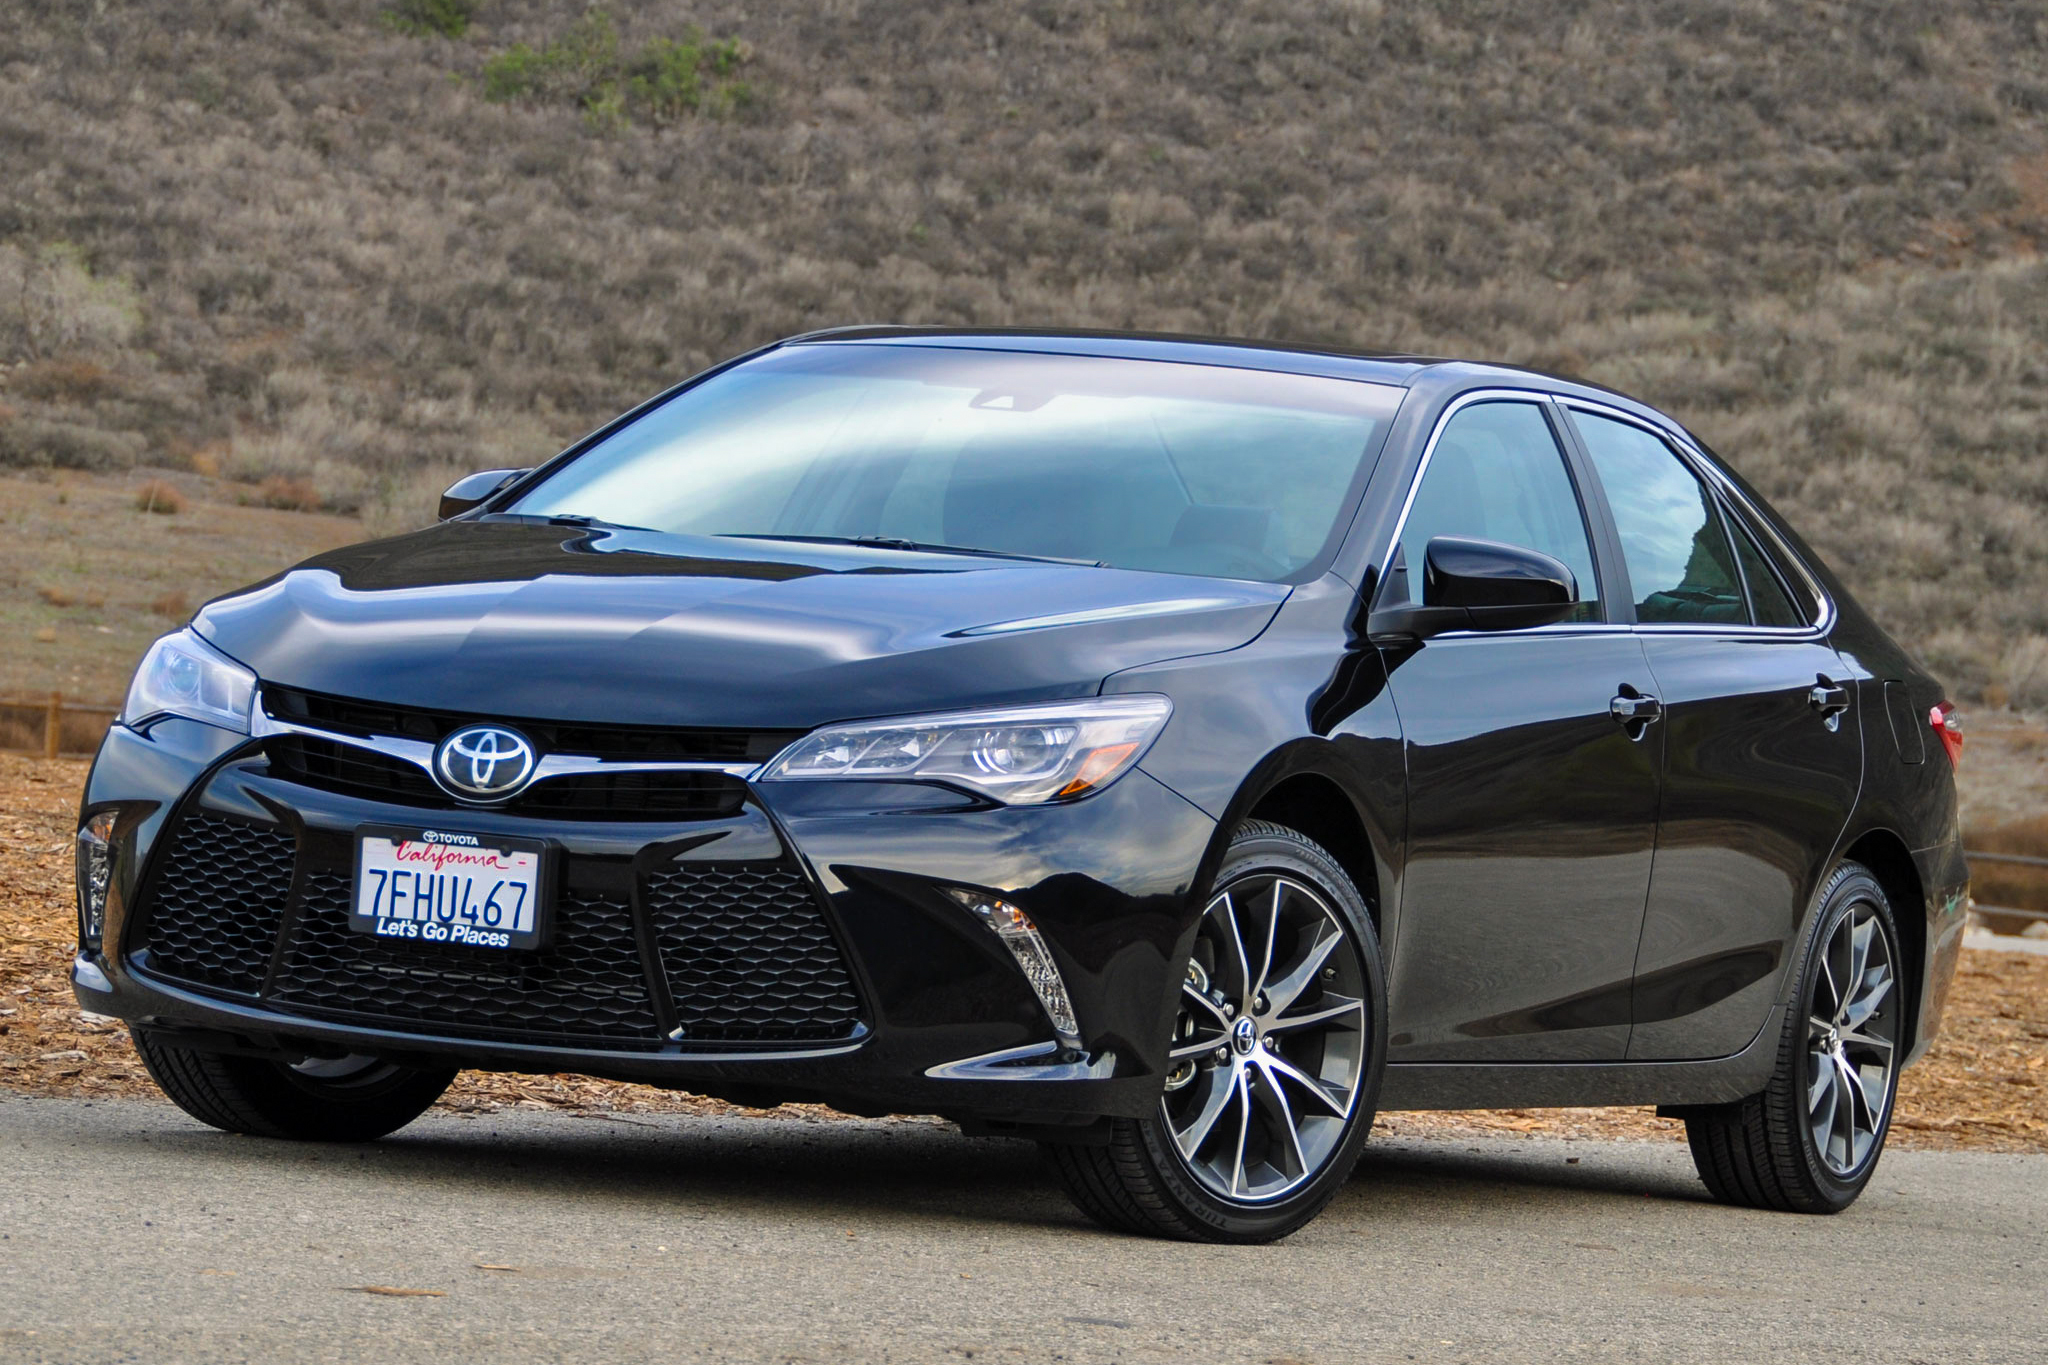 2015 toyota camry xse v6 review autoweb. Black Bedroom Furniture Sets. Home Design Ideas